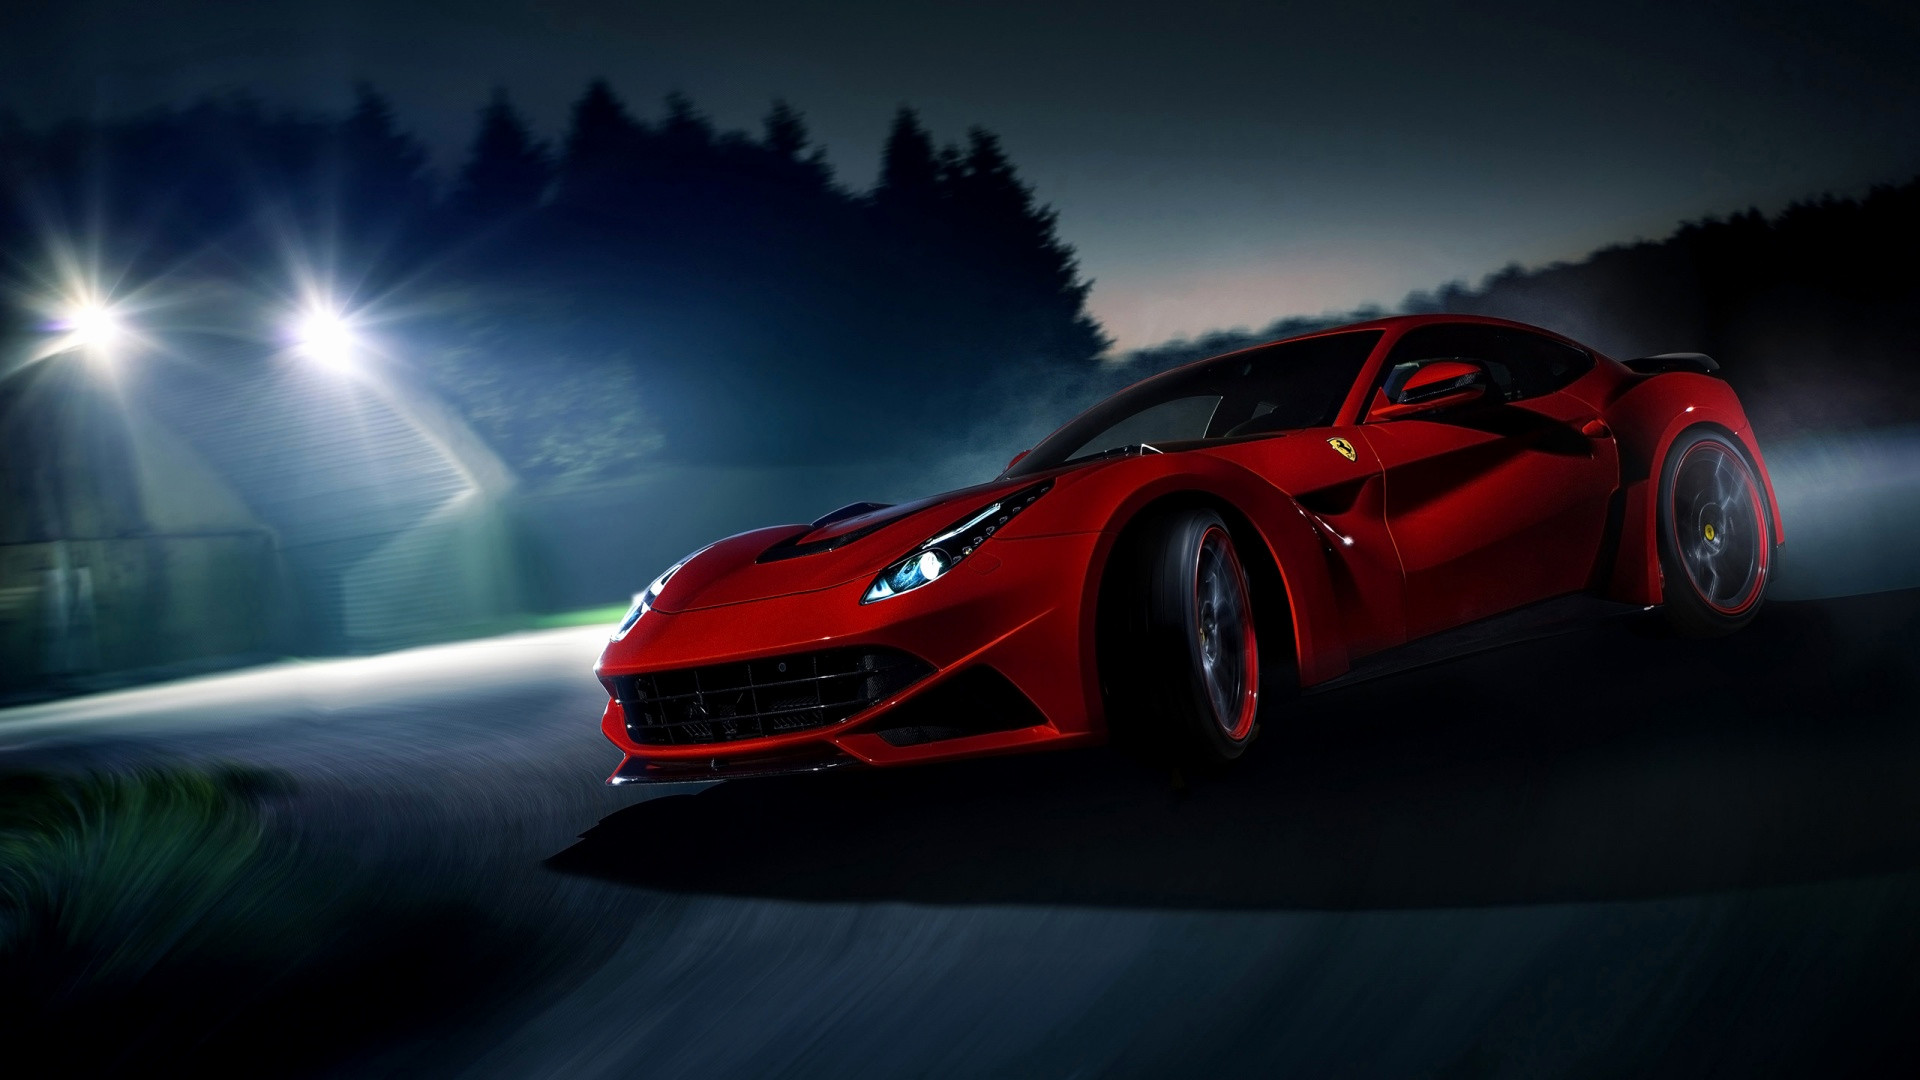 1920x1080 Cars Wallpaper Collection For Free Download